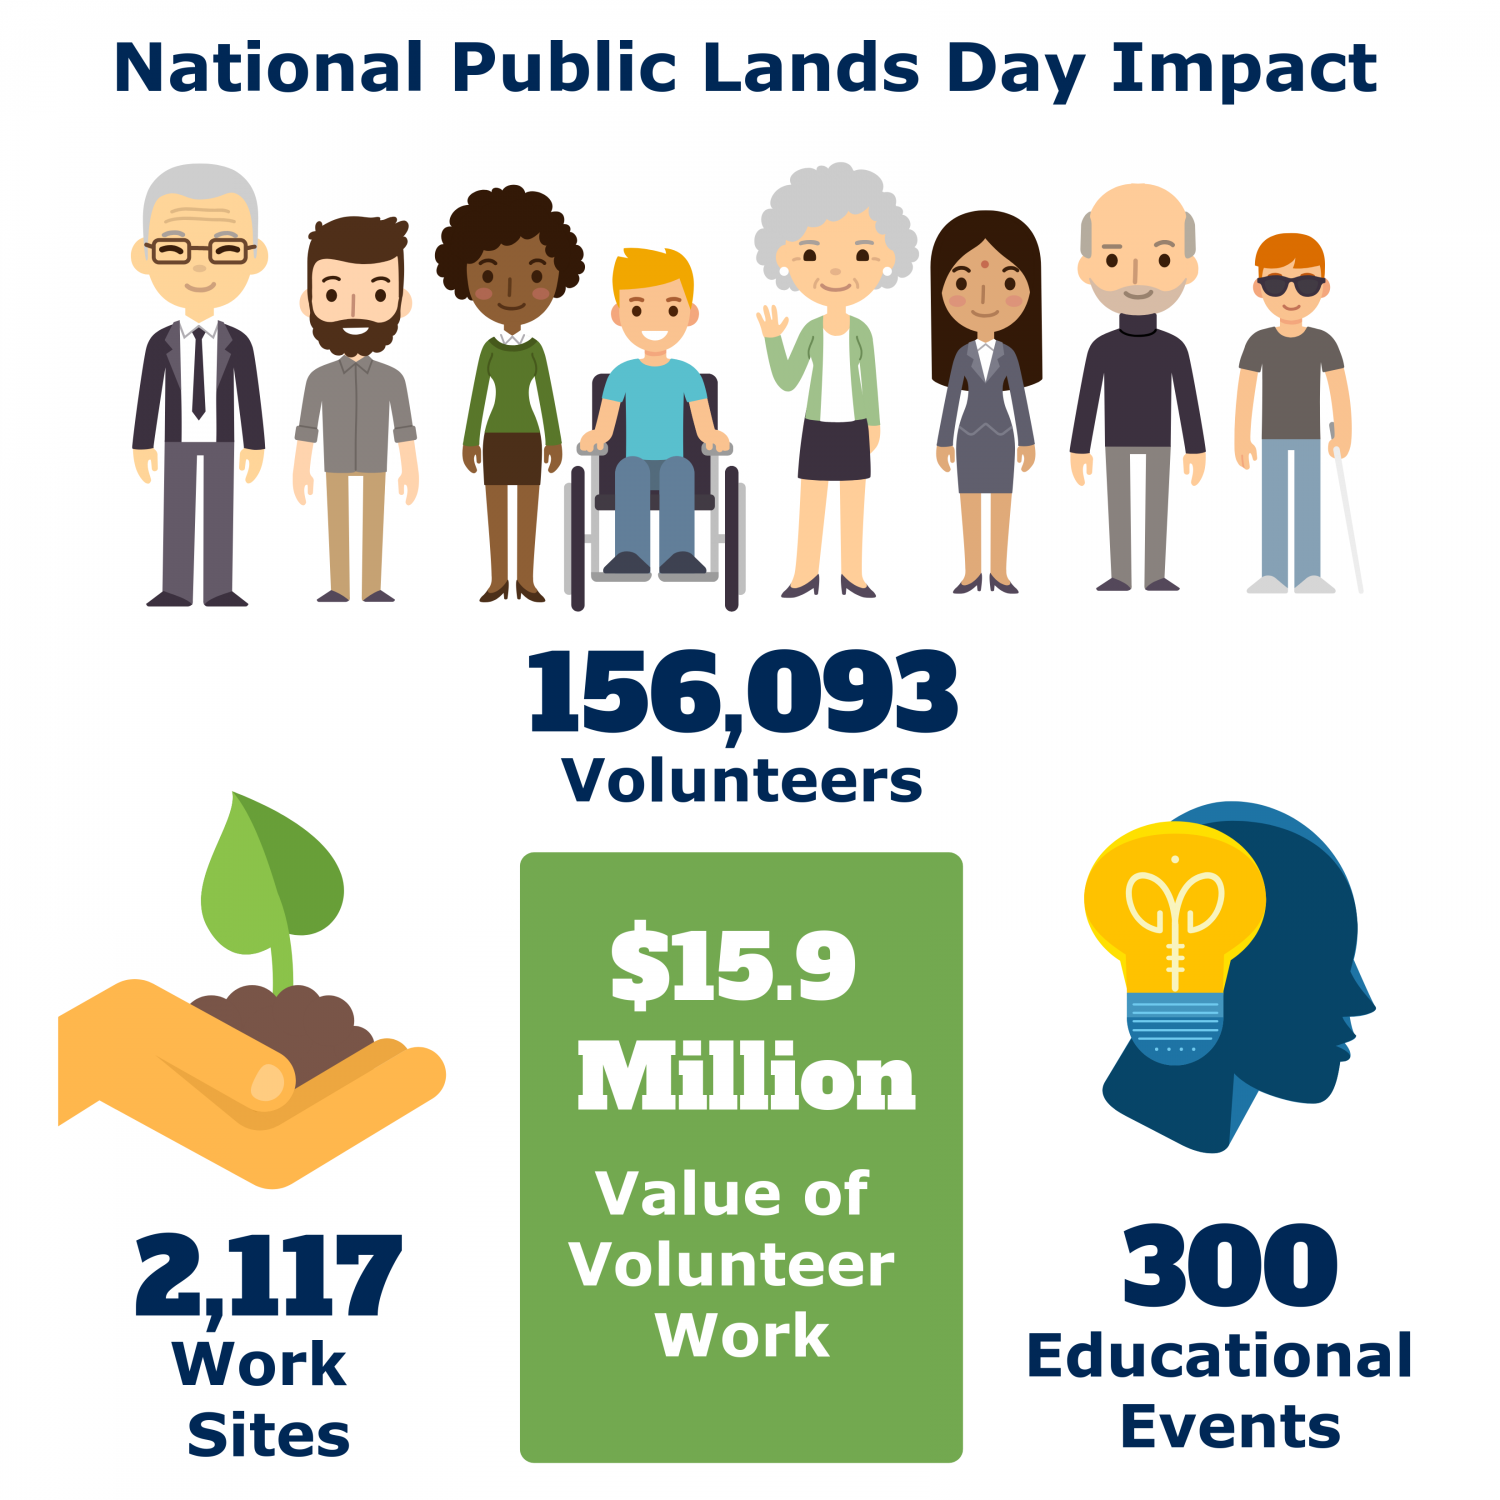 National Public Lands Day 2019 Impact: 156,093 volunteers; 2,117 work sites; $15.9 million value of volunteer work; 300 educational events